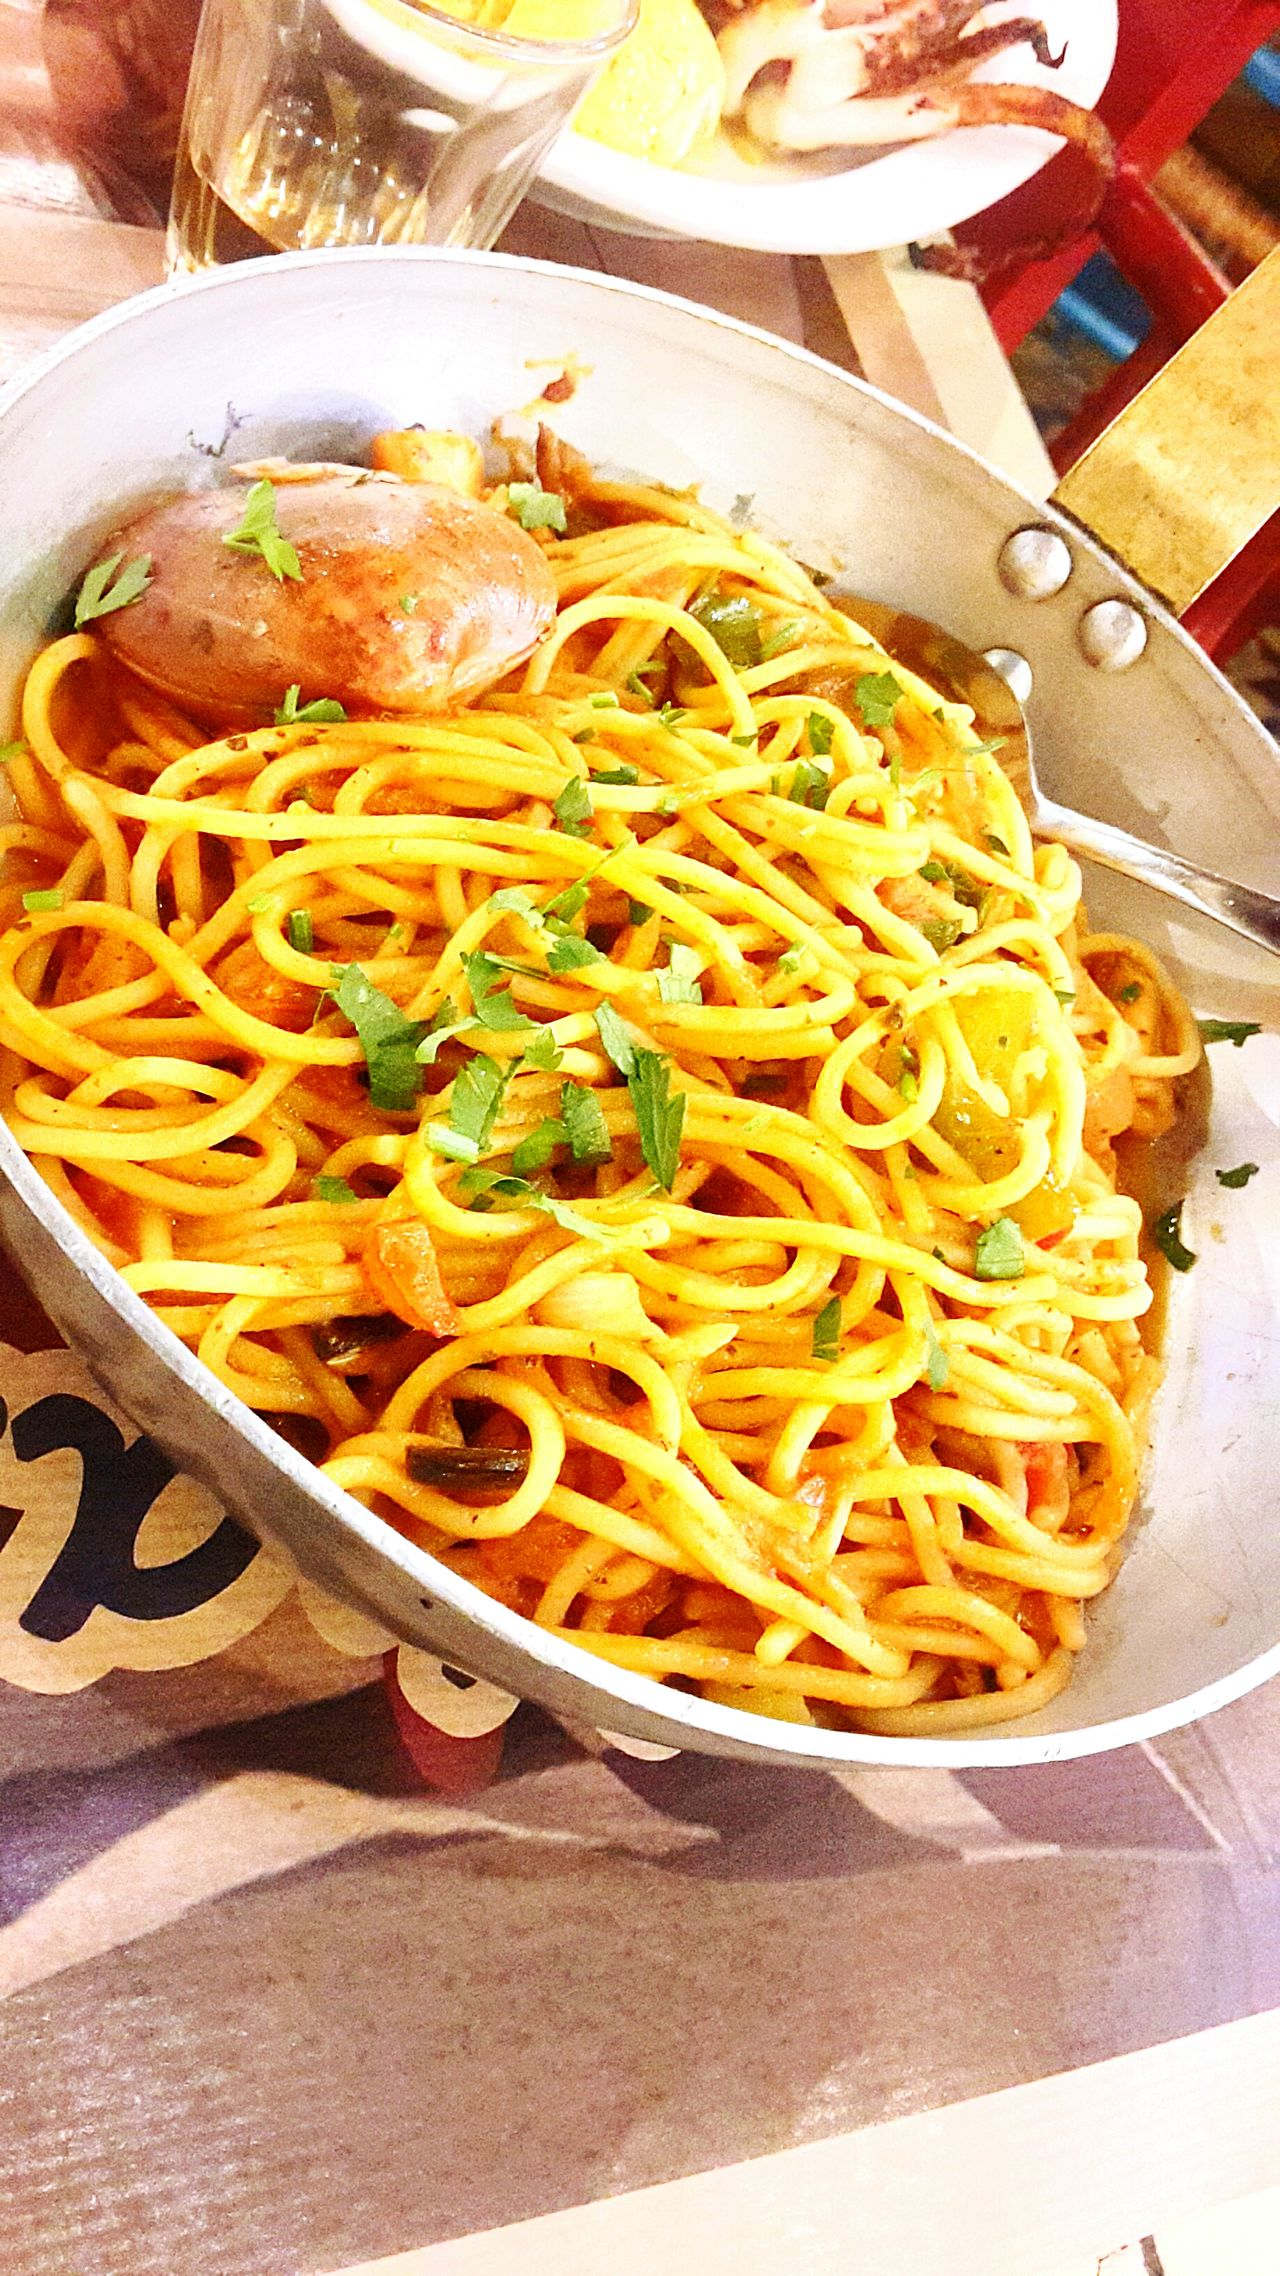 Food Food And Drink Freshness Indoors  Ready-to-eat Noodles No People Healthy Eating Close-up Day Seafoods Seafoodporn Greece Pasta Sealife Sea Life Seafoodisland Seafood Yum:) Seafood Lovers SEAFOOD🐡 SeafoodLover Seafood Dinner Seafood Pasta Seafoodpasta Seafood Restaurant